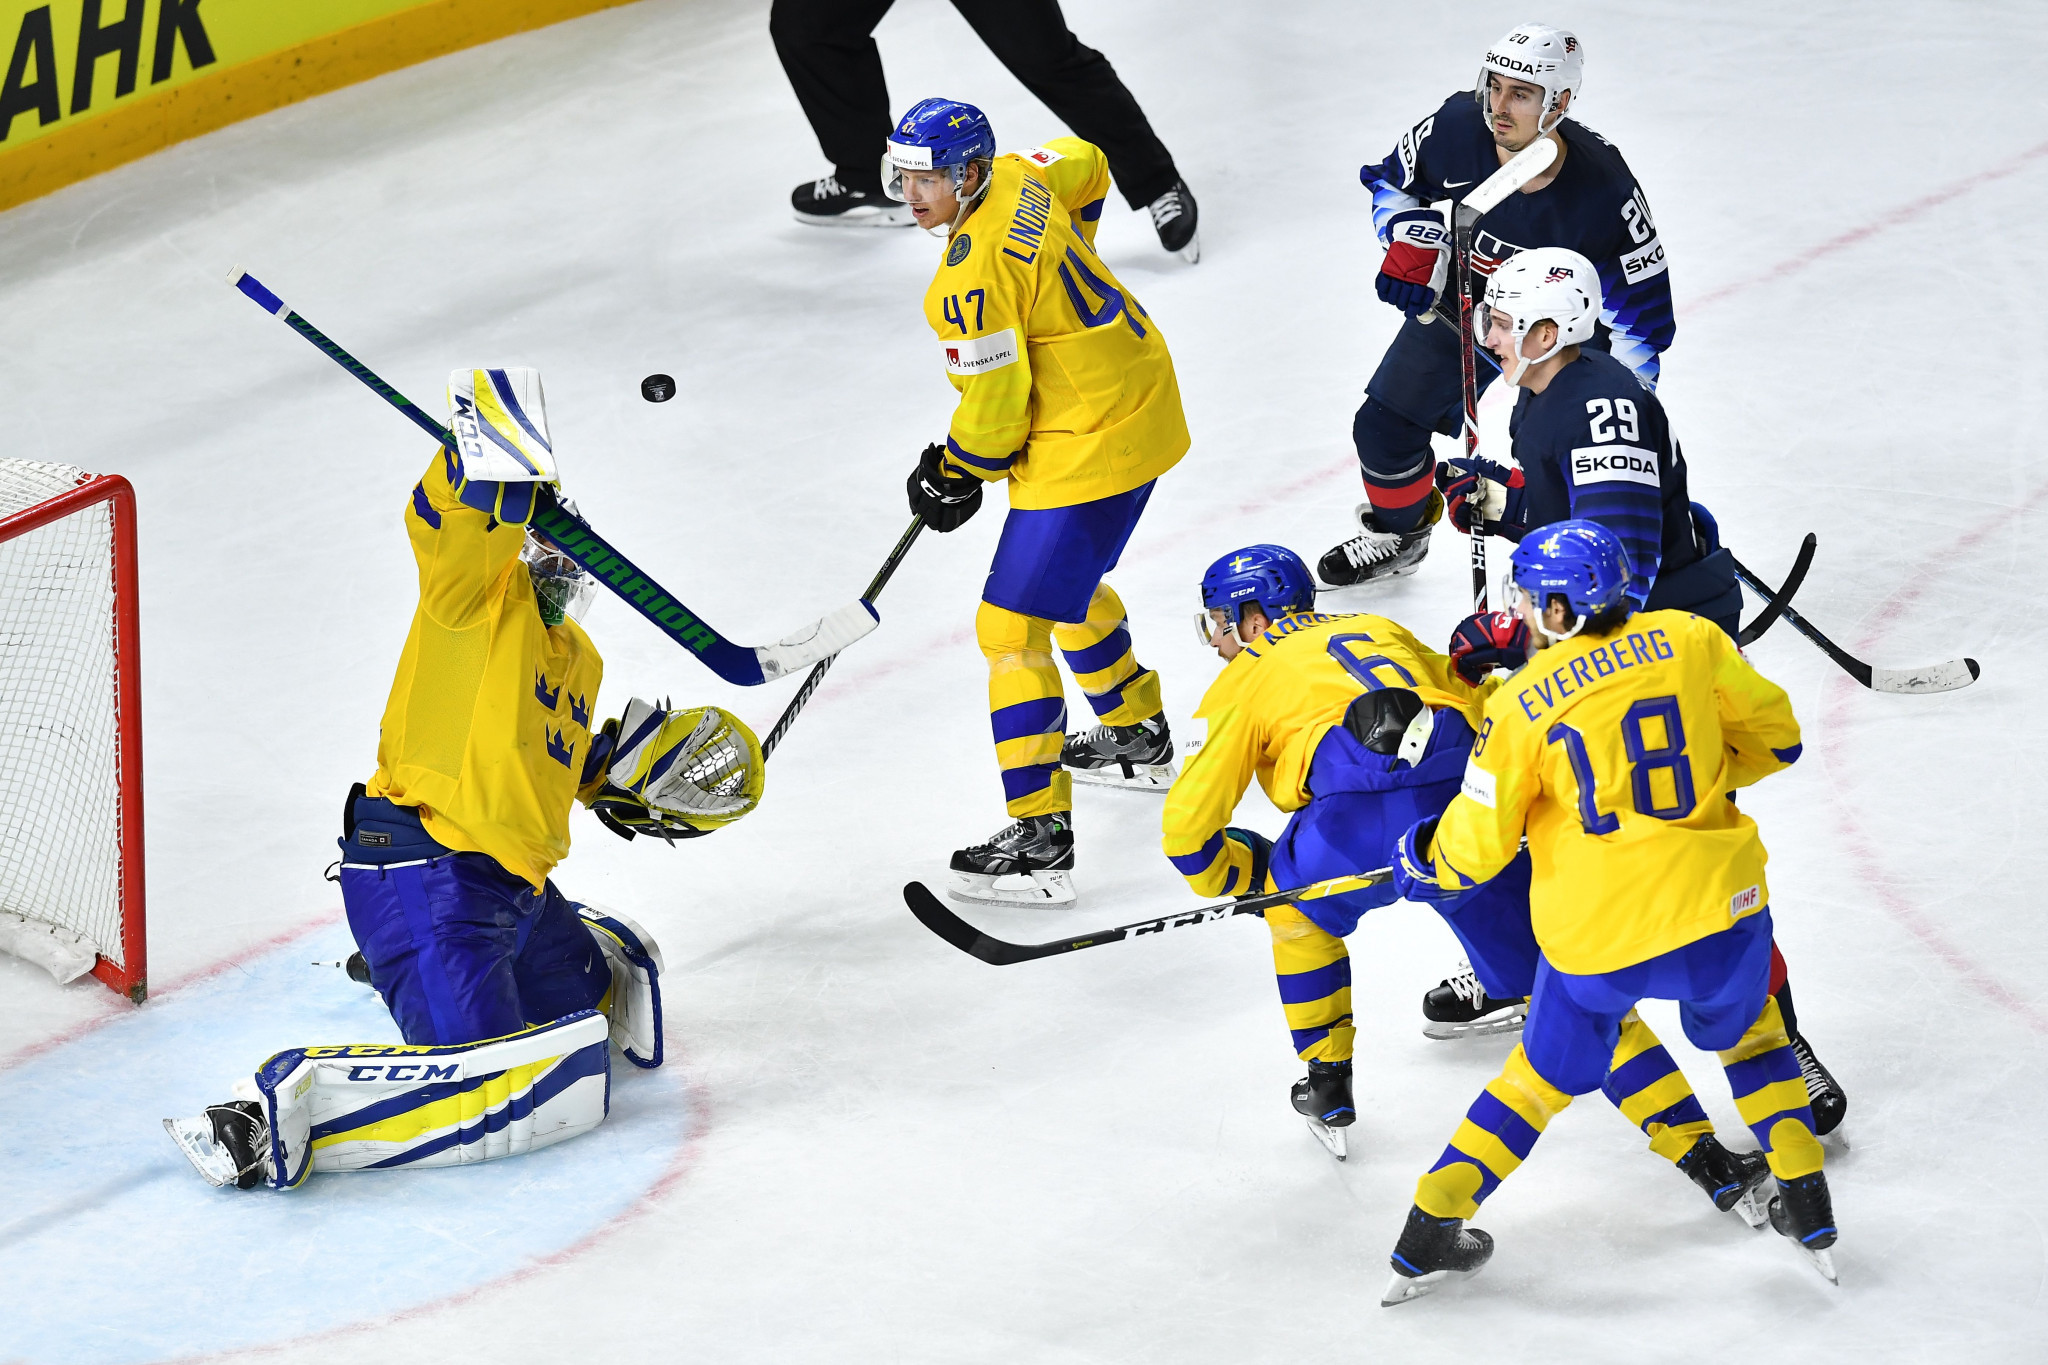 Sweden are interested in staging the World Championships in 2025 ©Getty Images